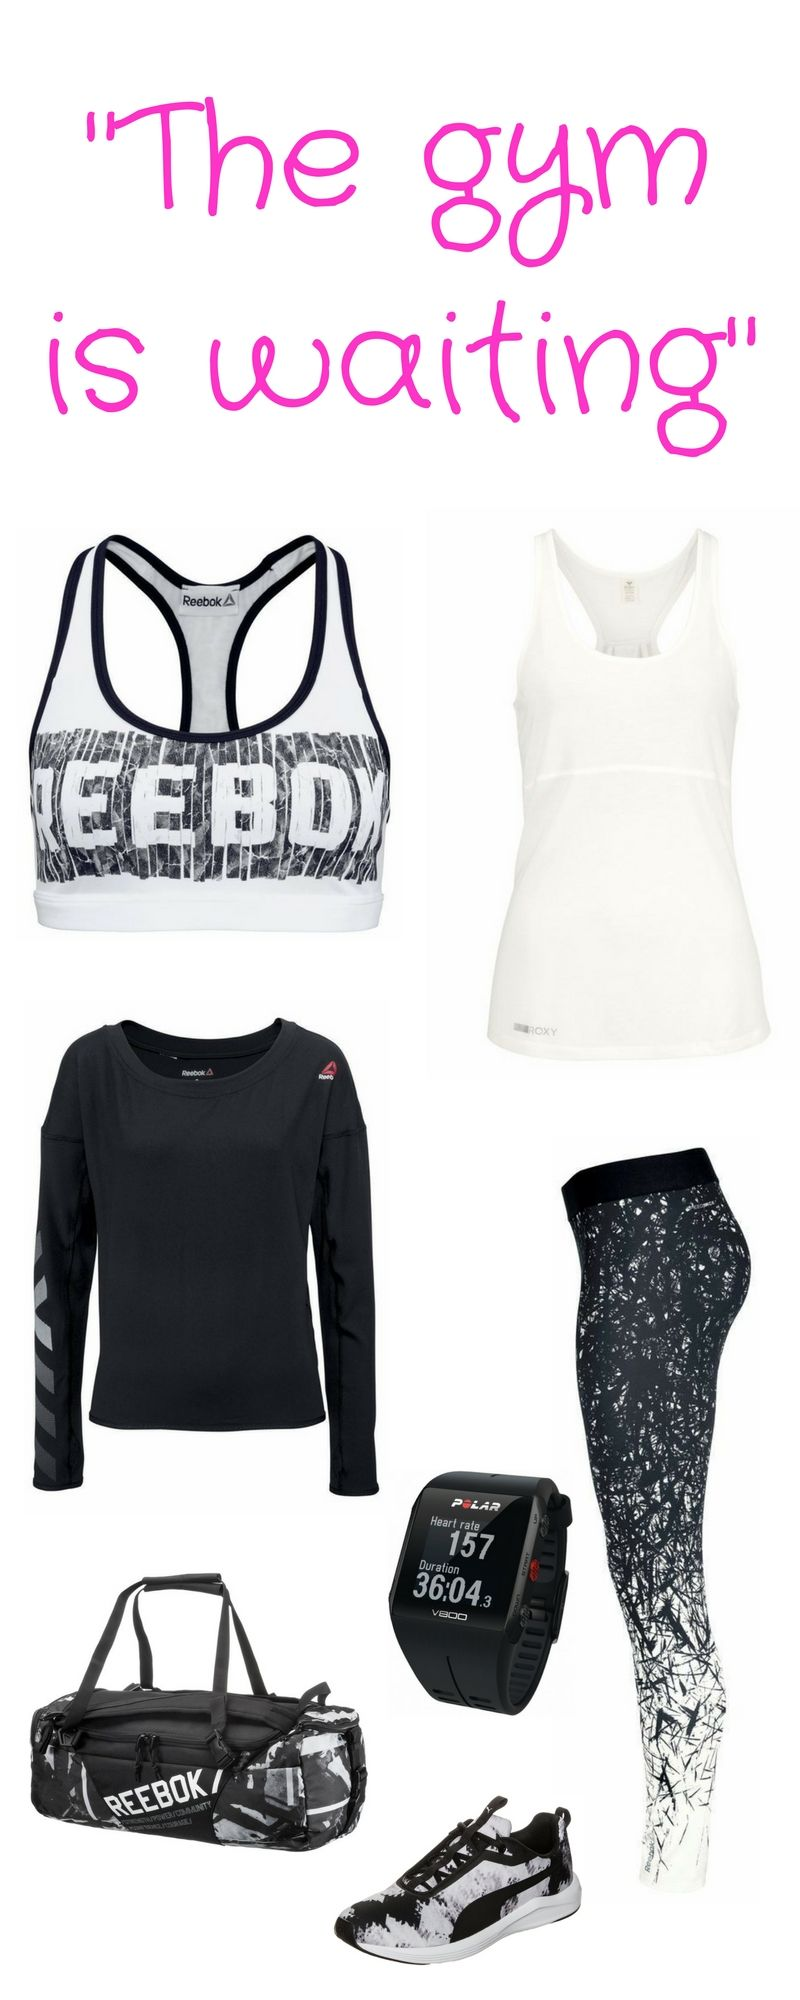 Fitness-Outfit - The gym is waiting ++ mit Multisportuhr ...